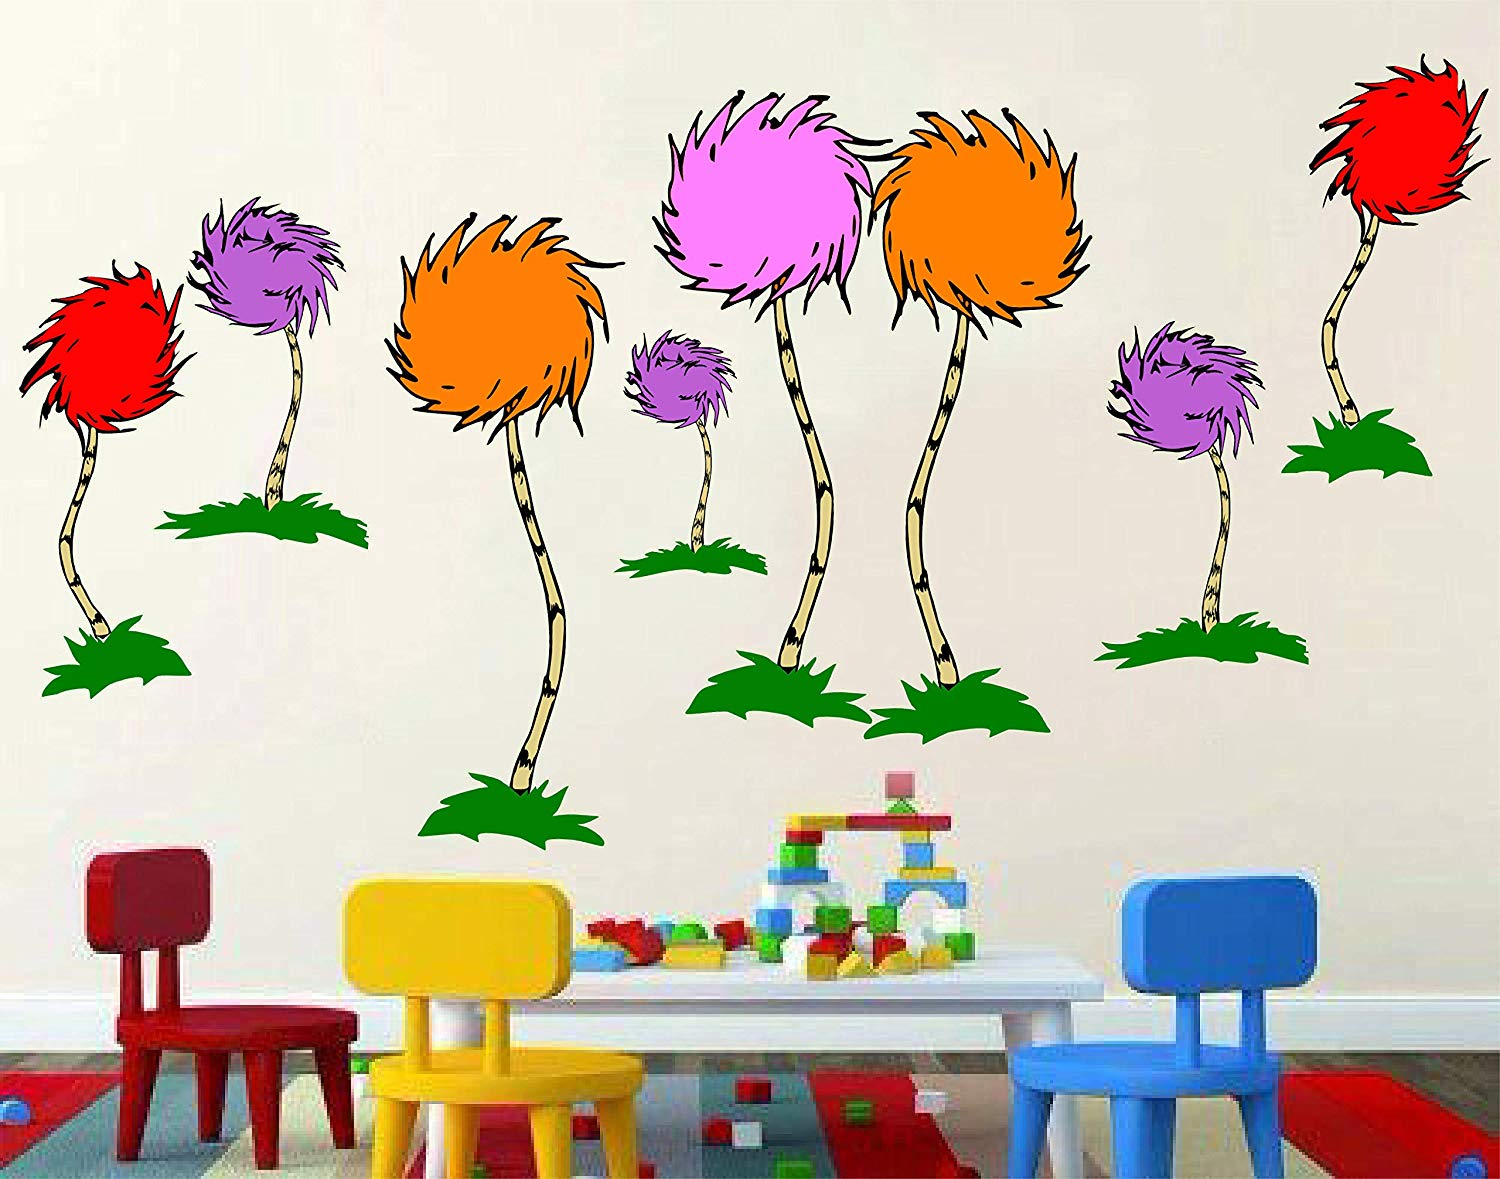 "Dr. Seuss The Lorax, truffula tree, 3D Window View Decal Graphic WALL STICKER Art Mural 18"", 24"", 36"" or 52"""